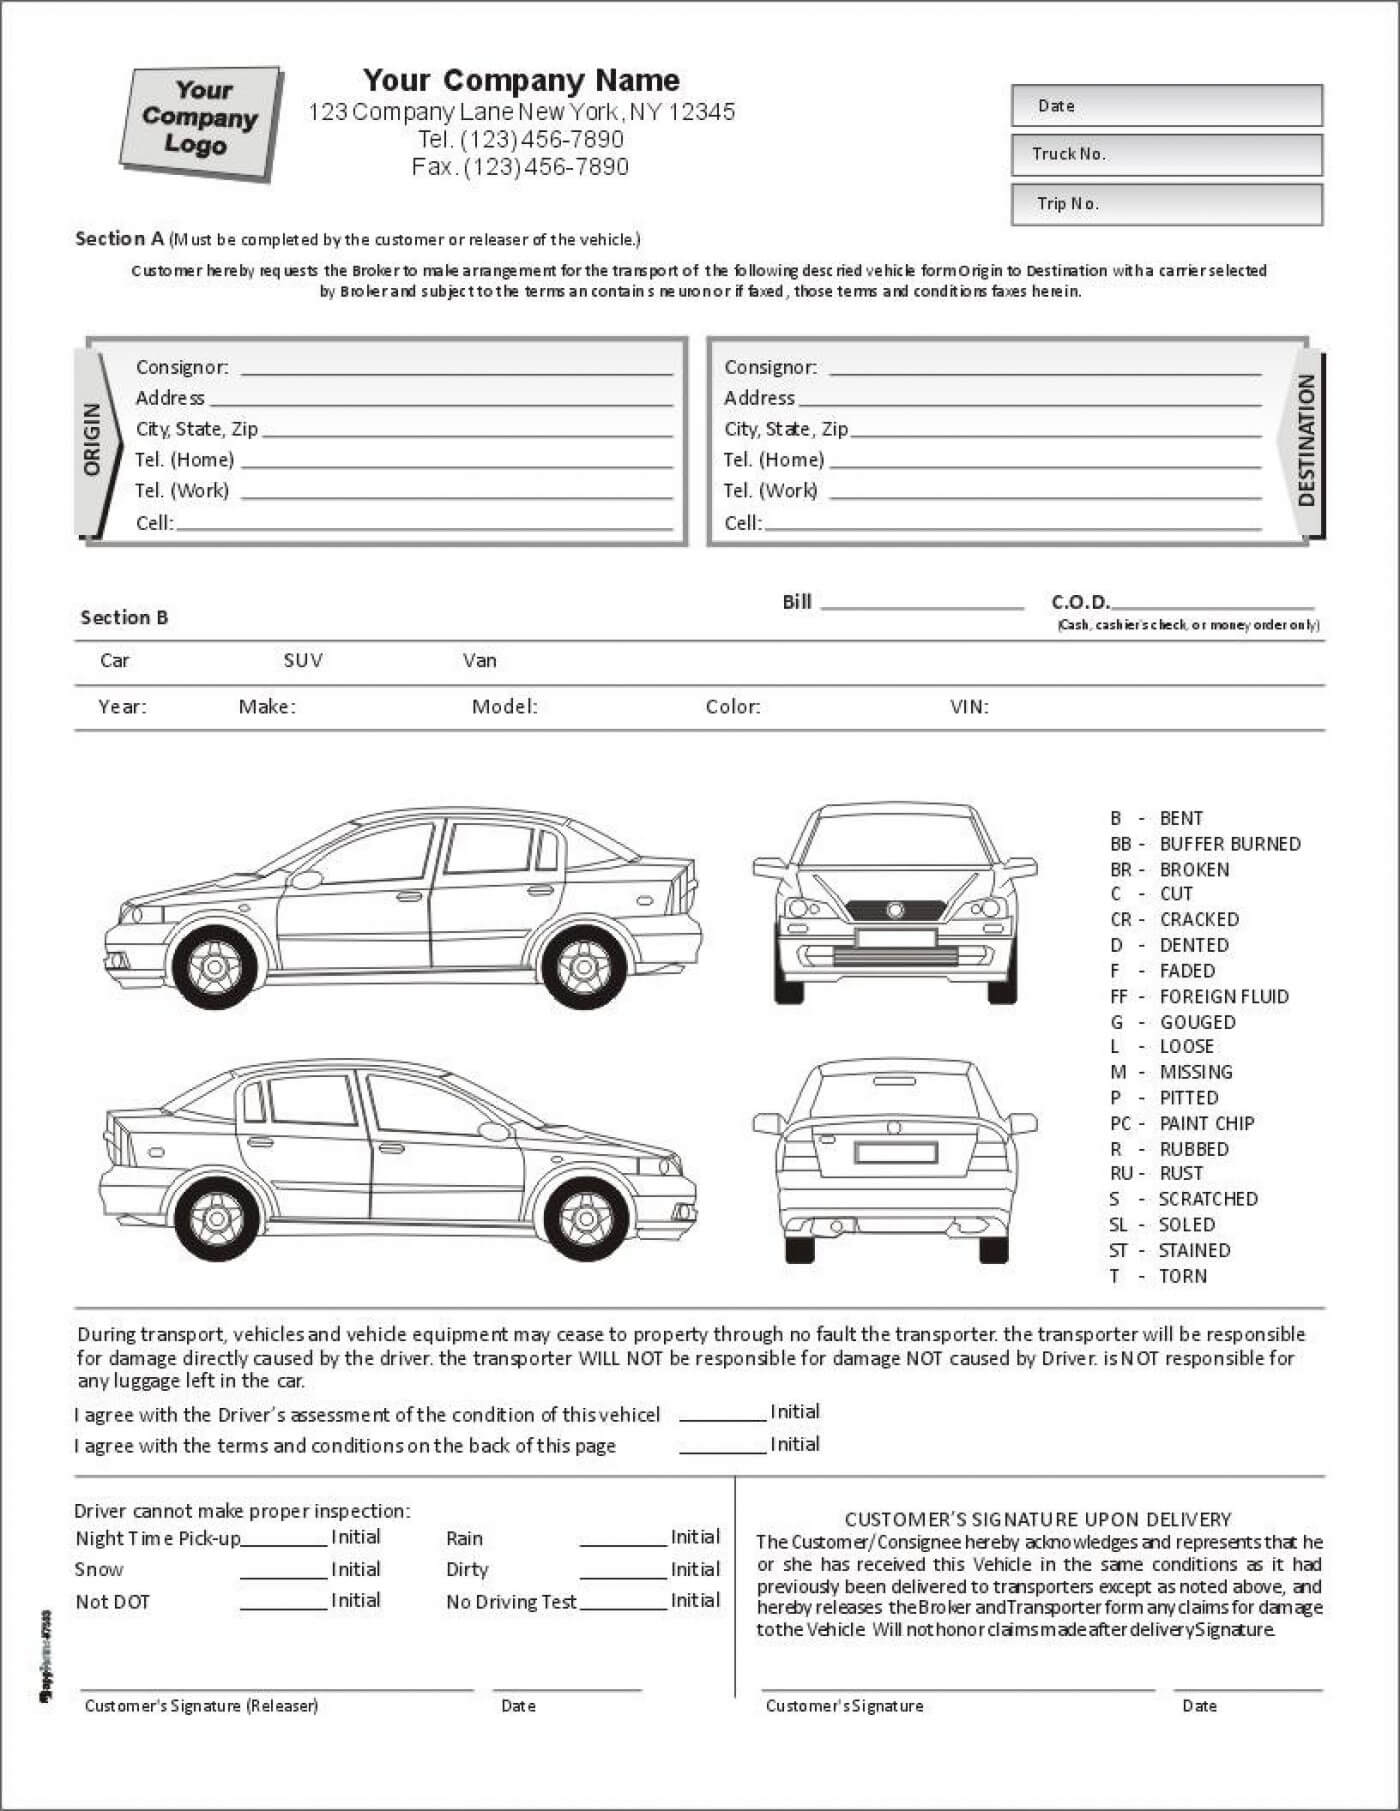 E8Fc7 Vehicle Damage Report Template | Wiring Resources Throughout Car Damage Report Template